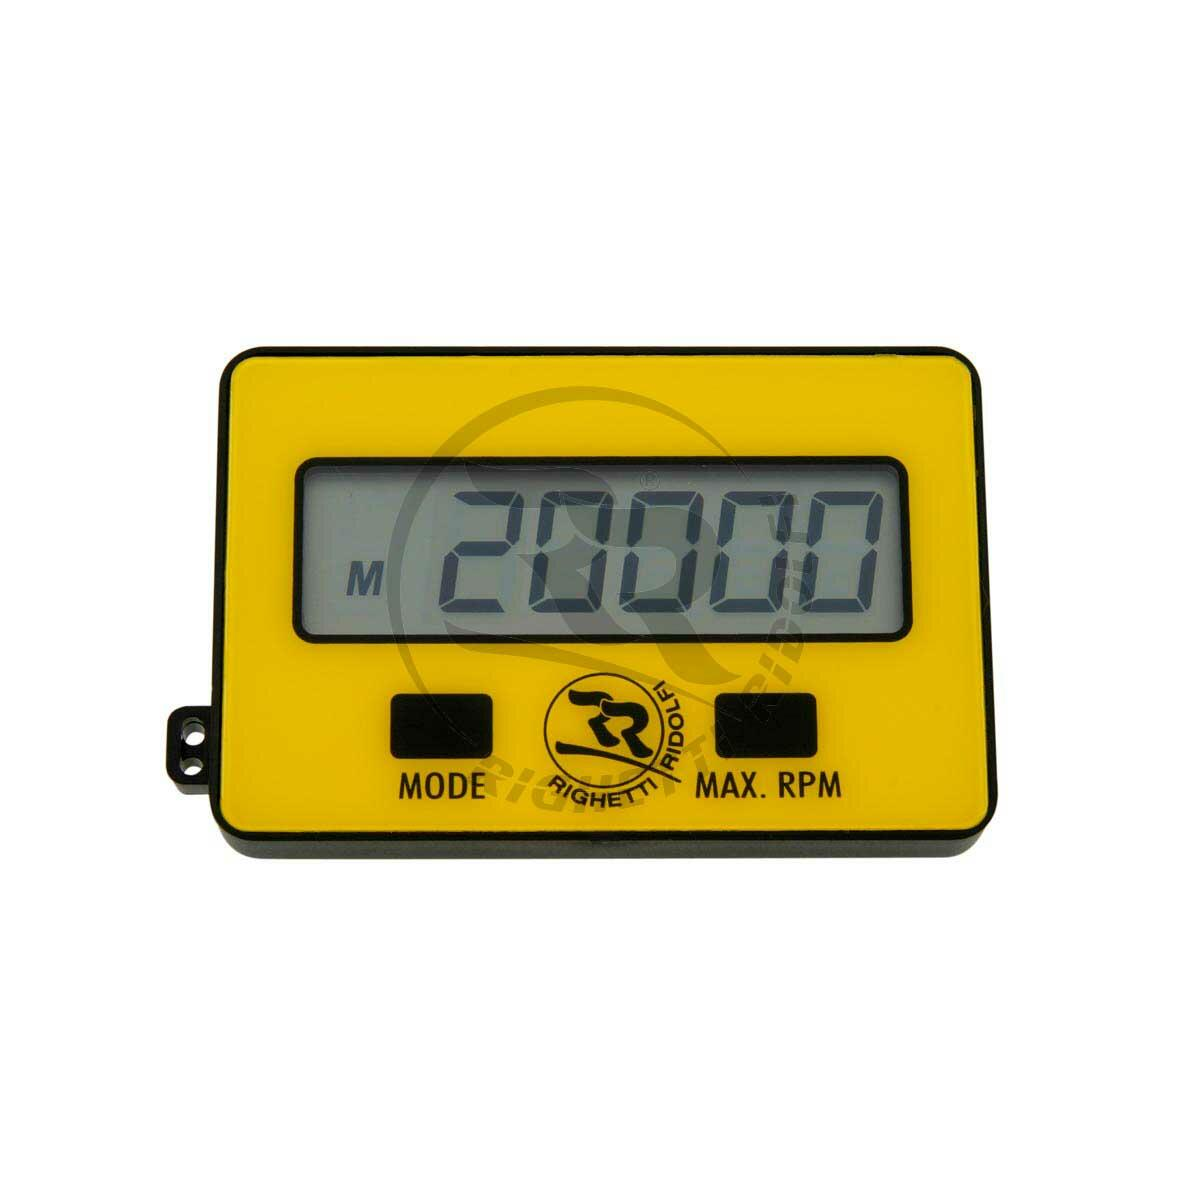 Accessories | Tachometer & Hour meters & Supports | Righetti e Ridolfi